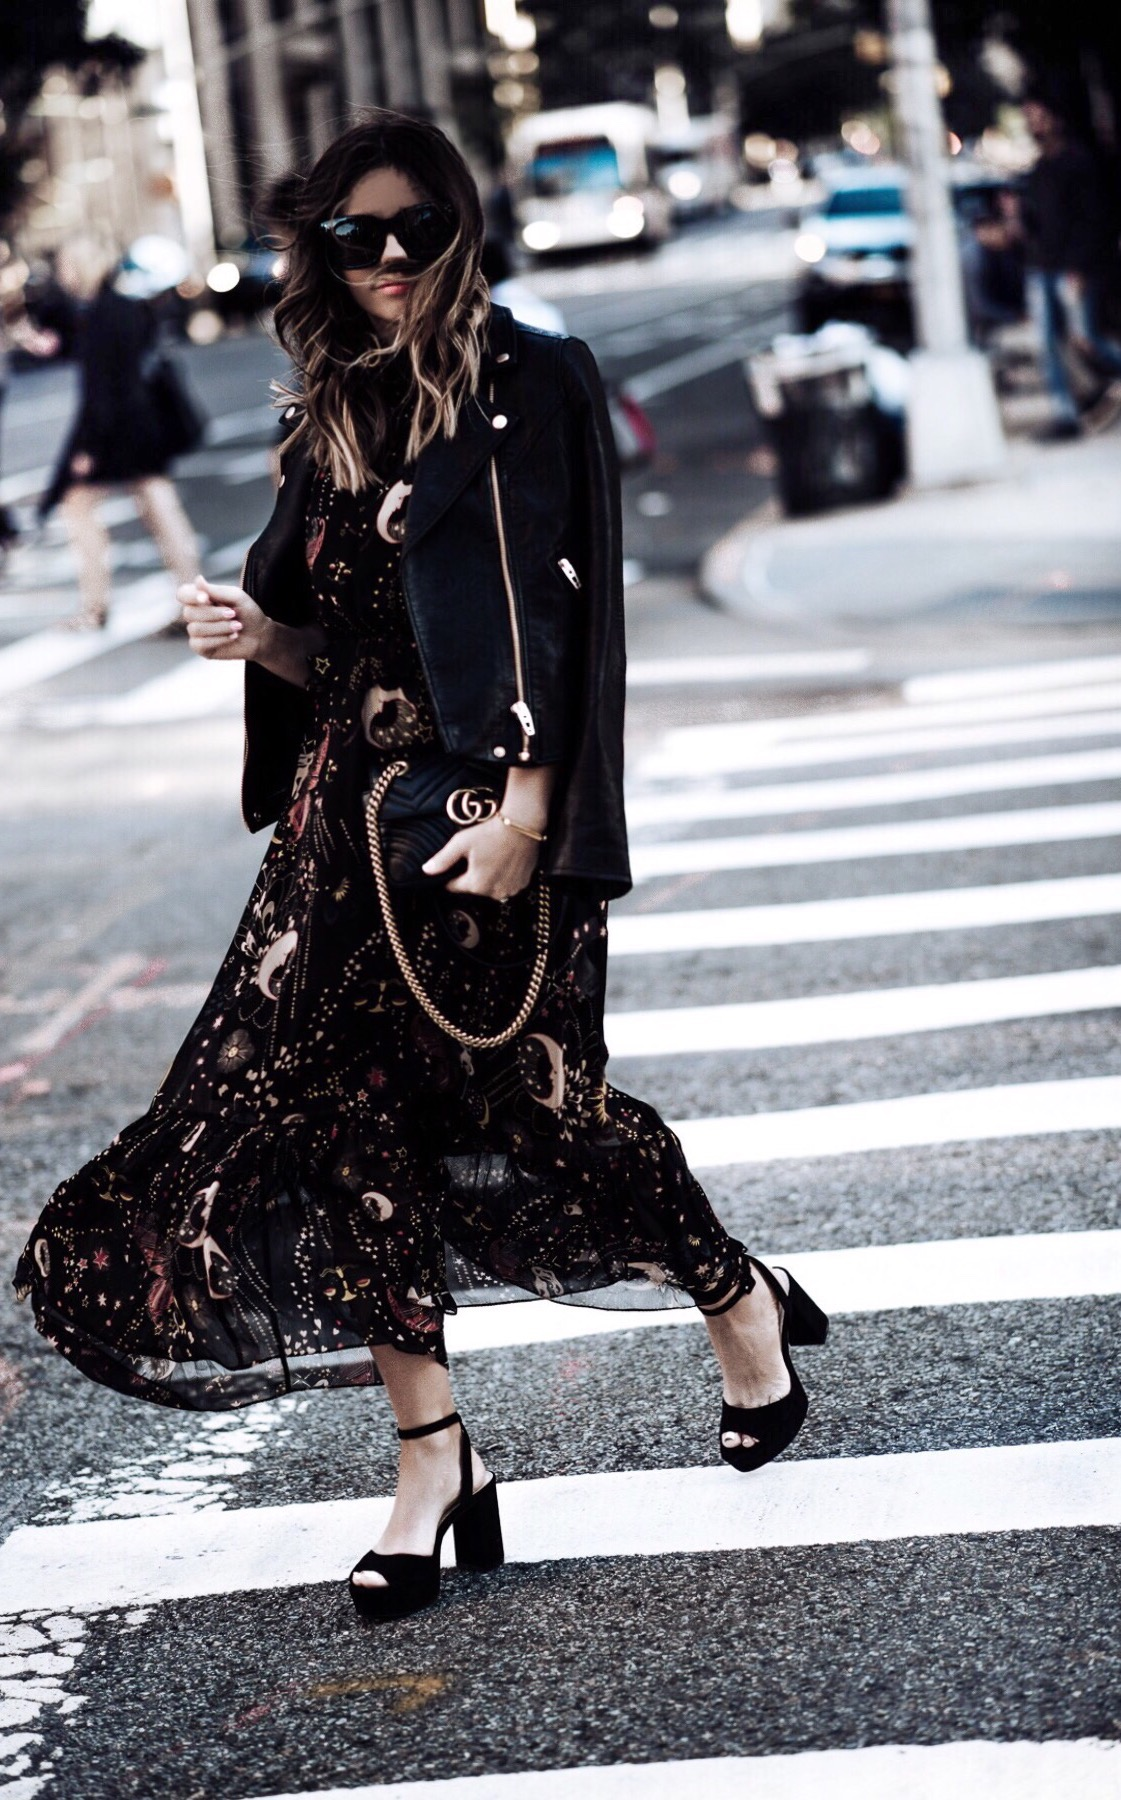 Tiffany Jais fashion and lifestyle blogger of Flaunt and Center | NYFW | Zara floral dress | Black moto jacket